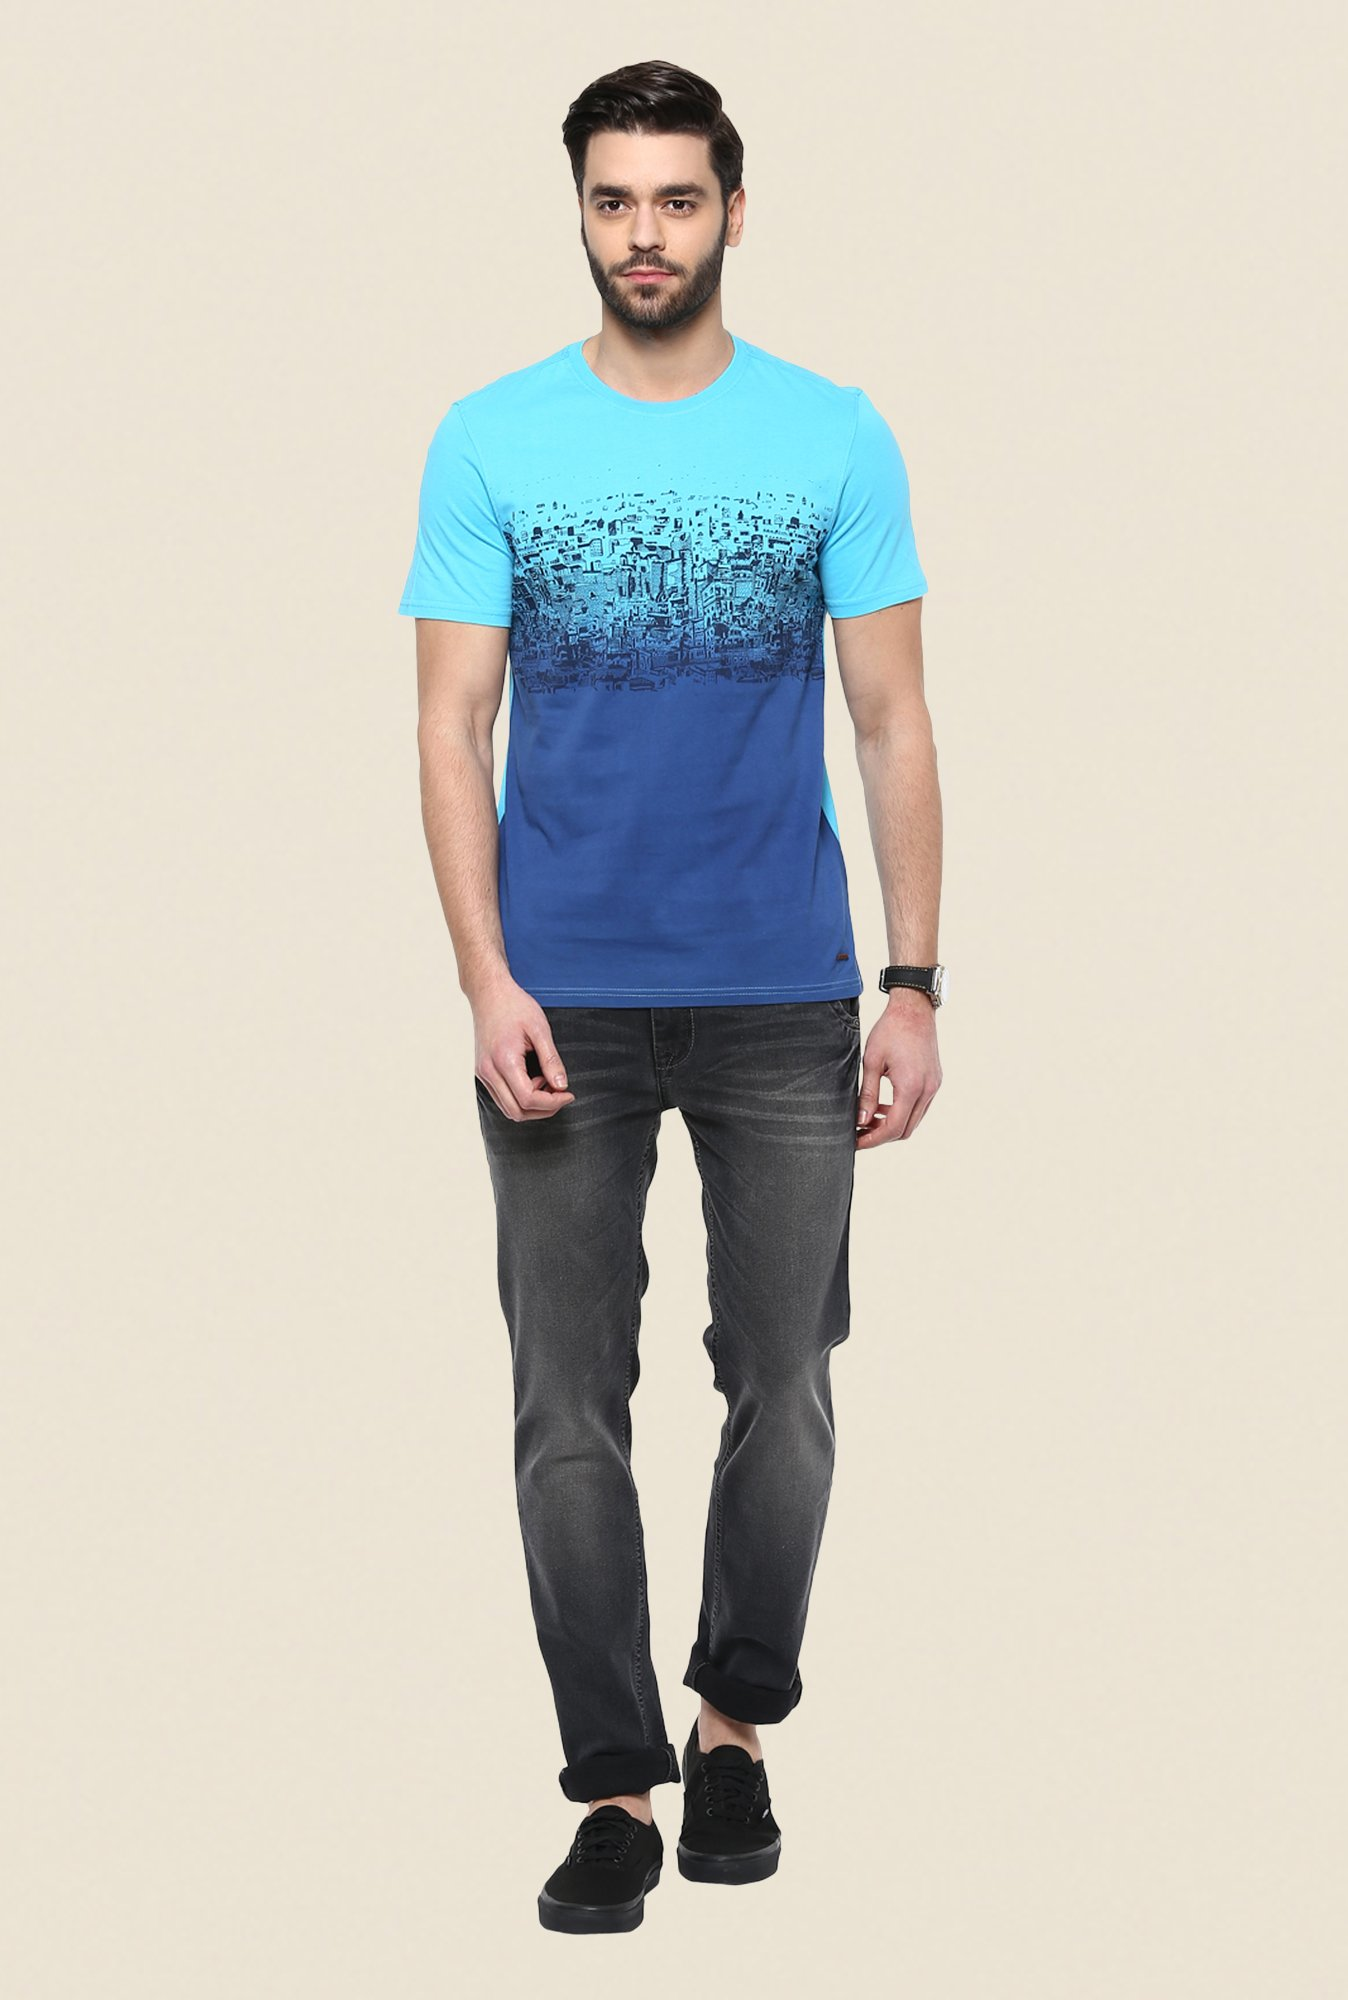 Turtle Blue Graphic Print T Shirt